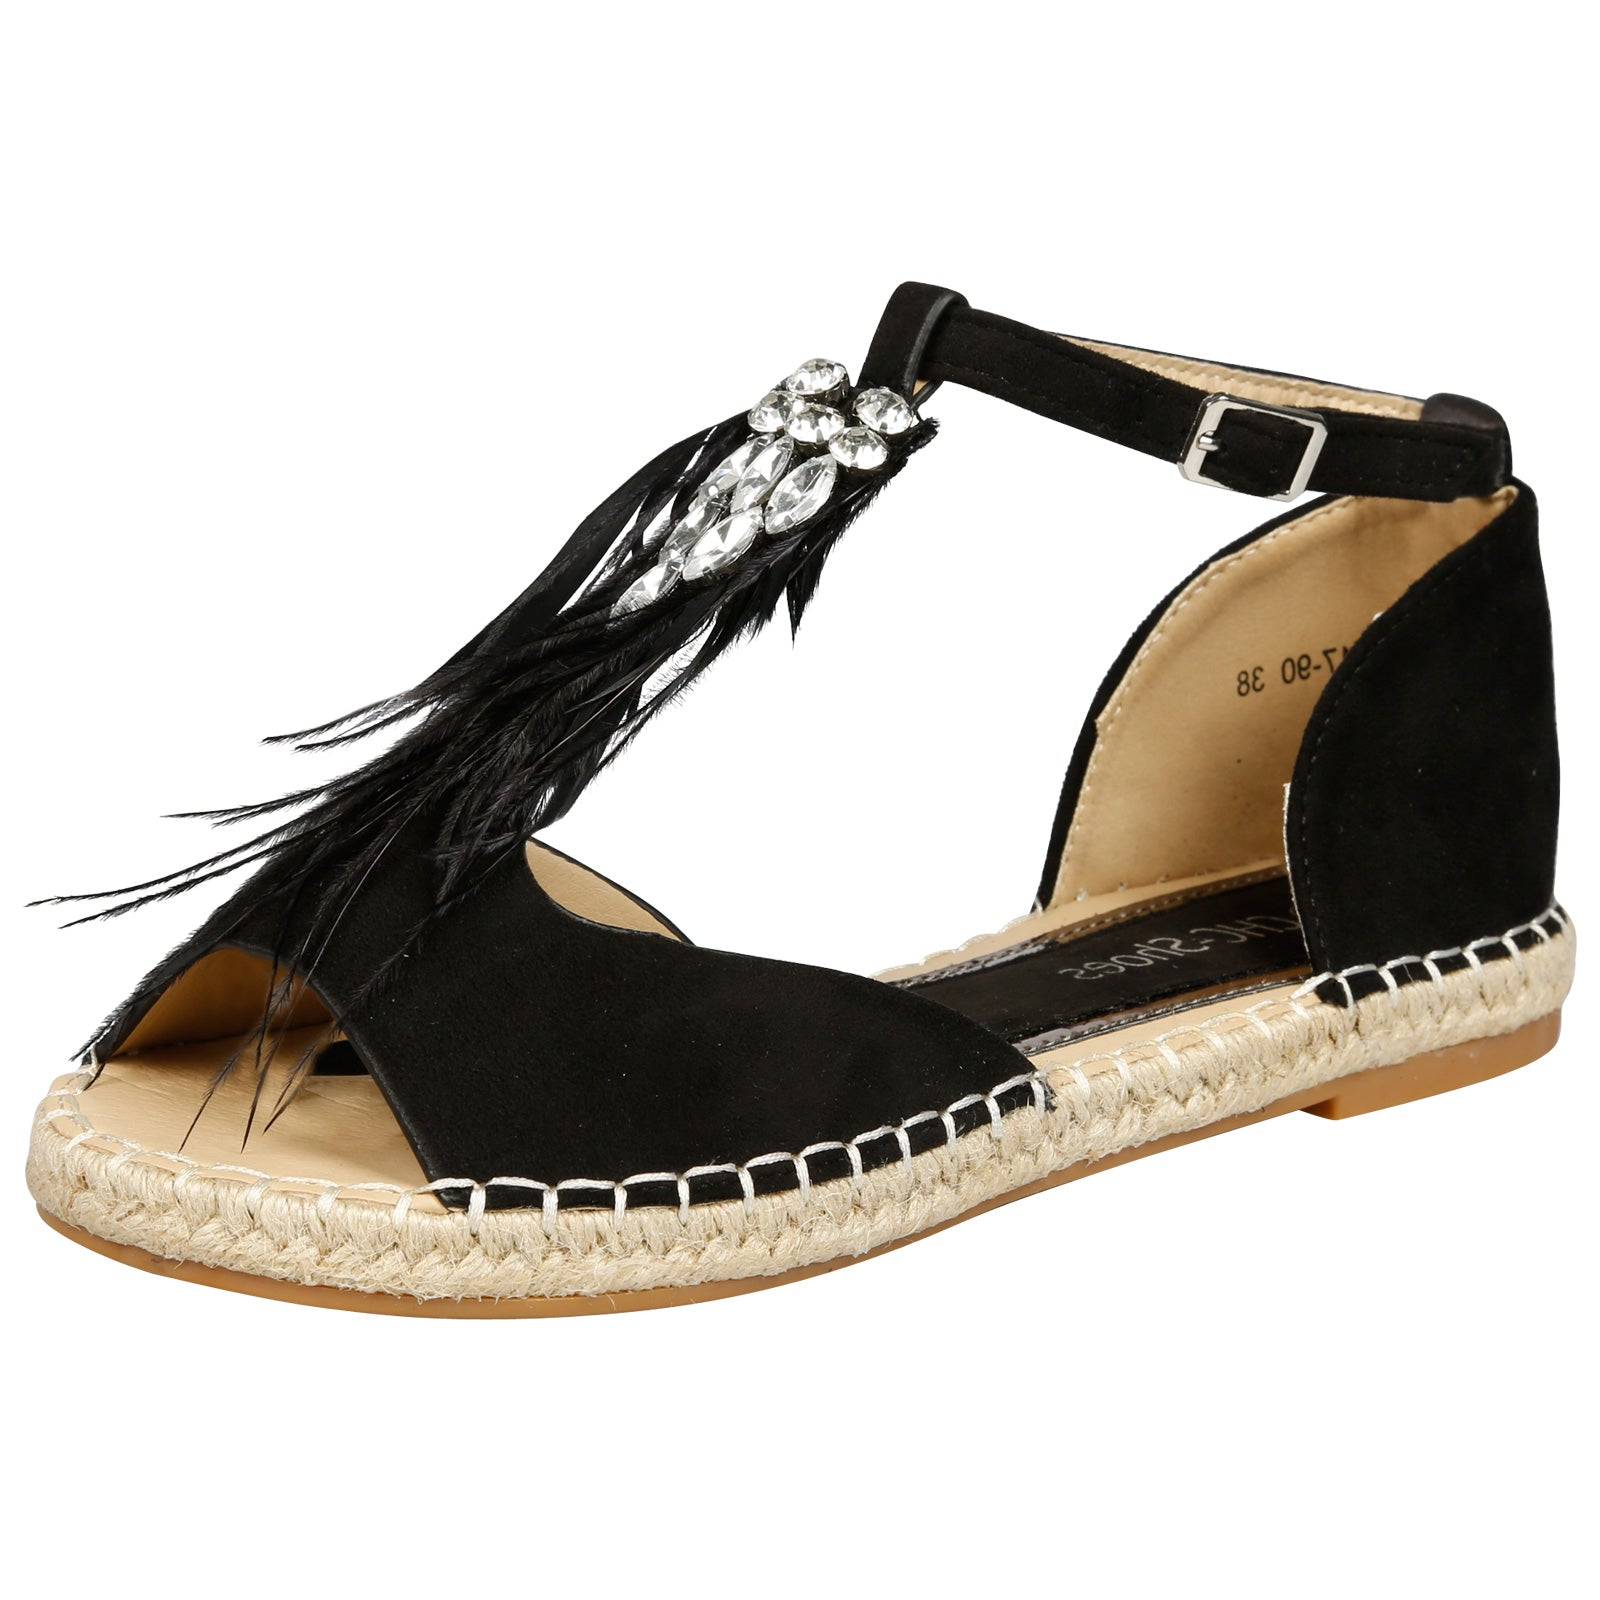 Gaia Feather T Bar Espadrille Sandals in Black Faux Suede - Feet First Fashion